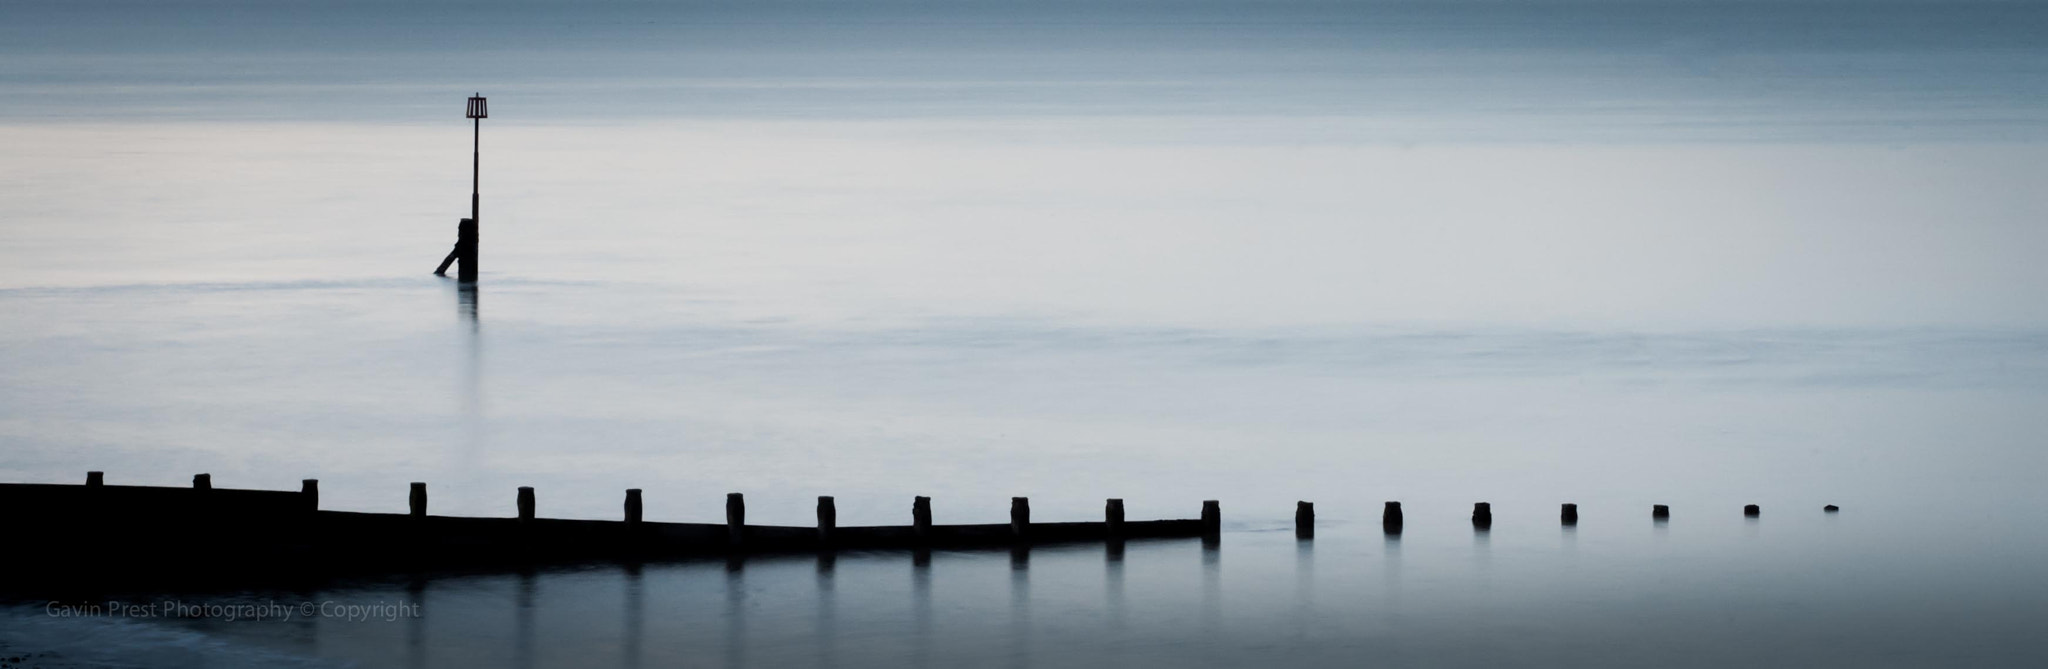 Photograph A peaceful sea at Hornsea by Gavin Prest on 500px